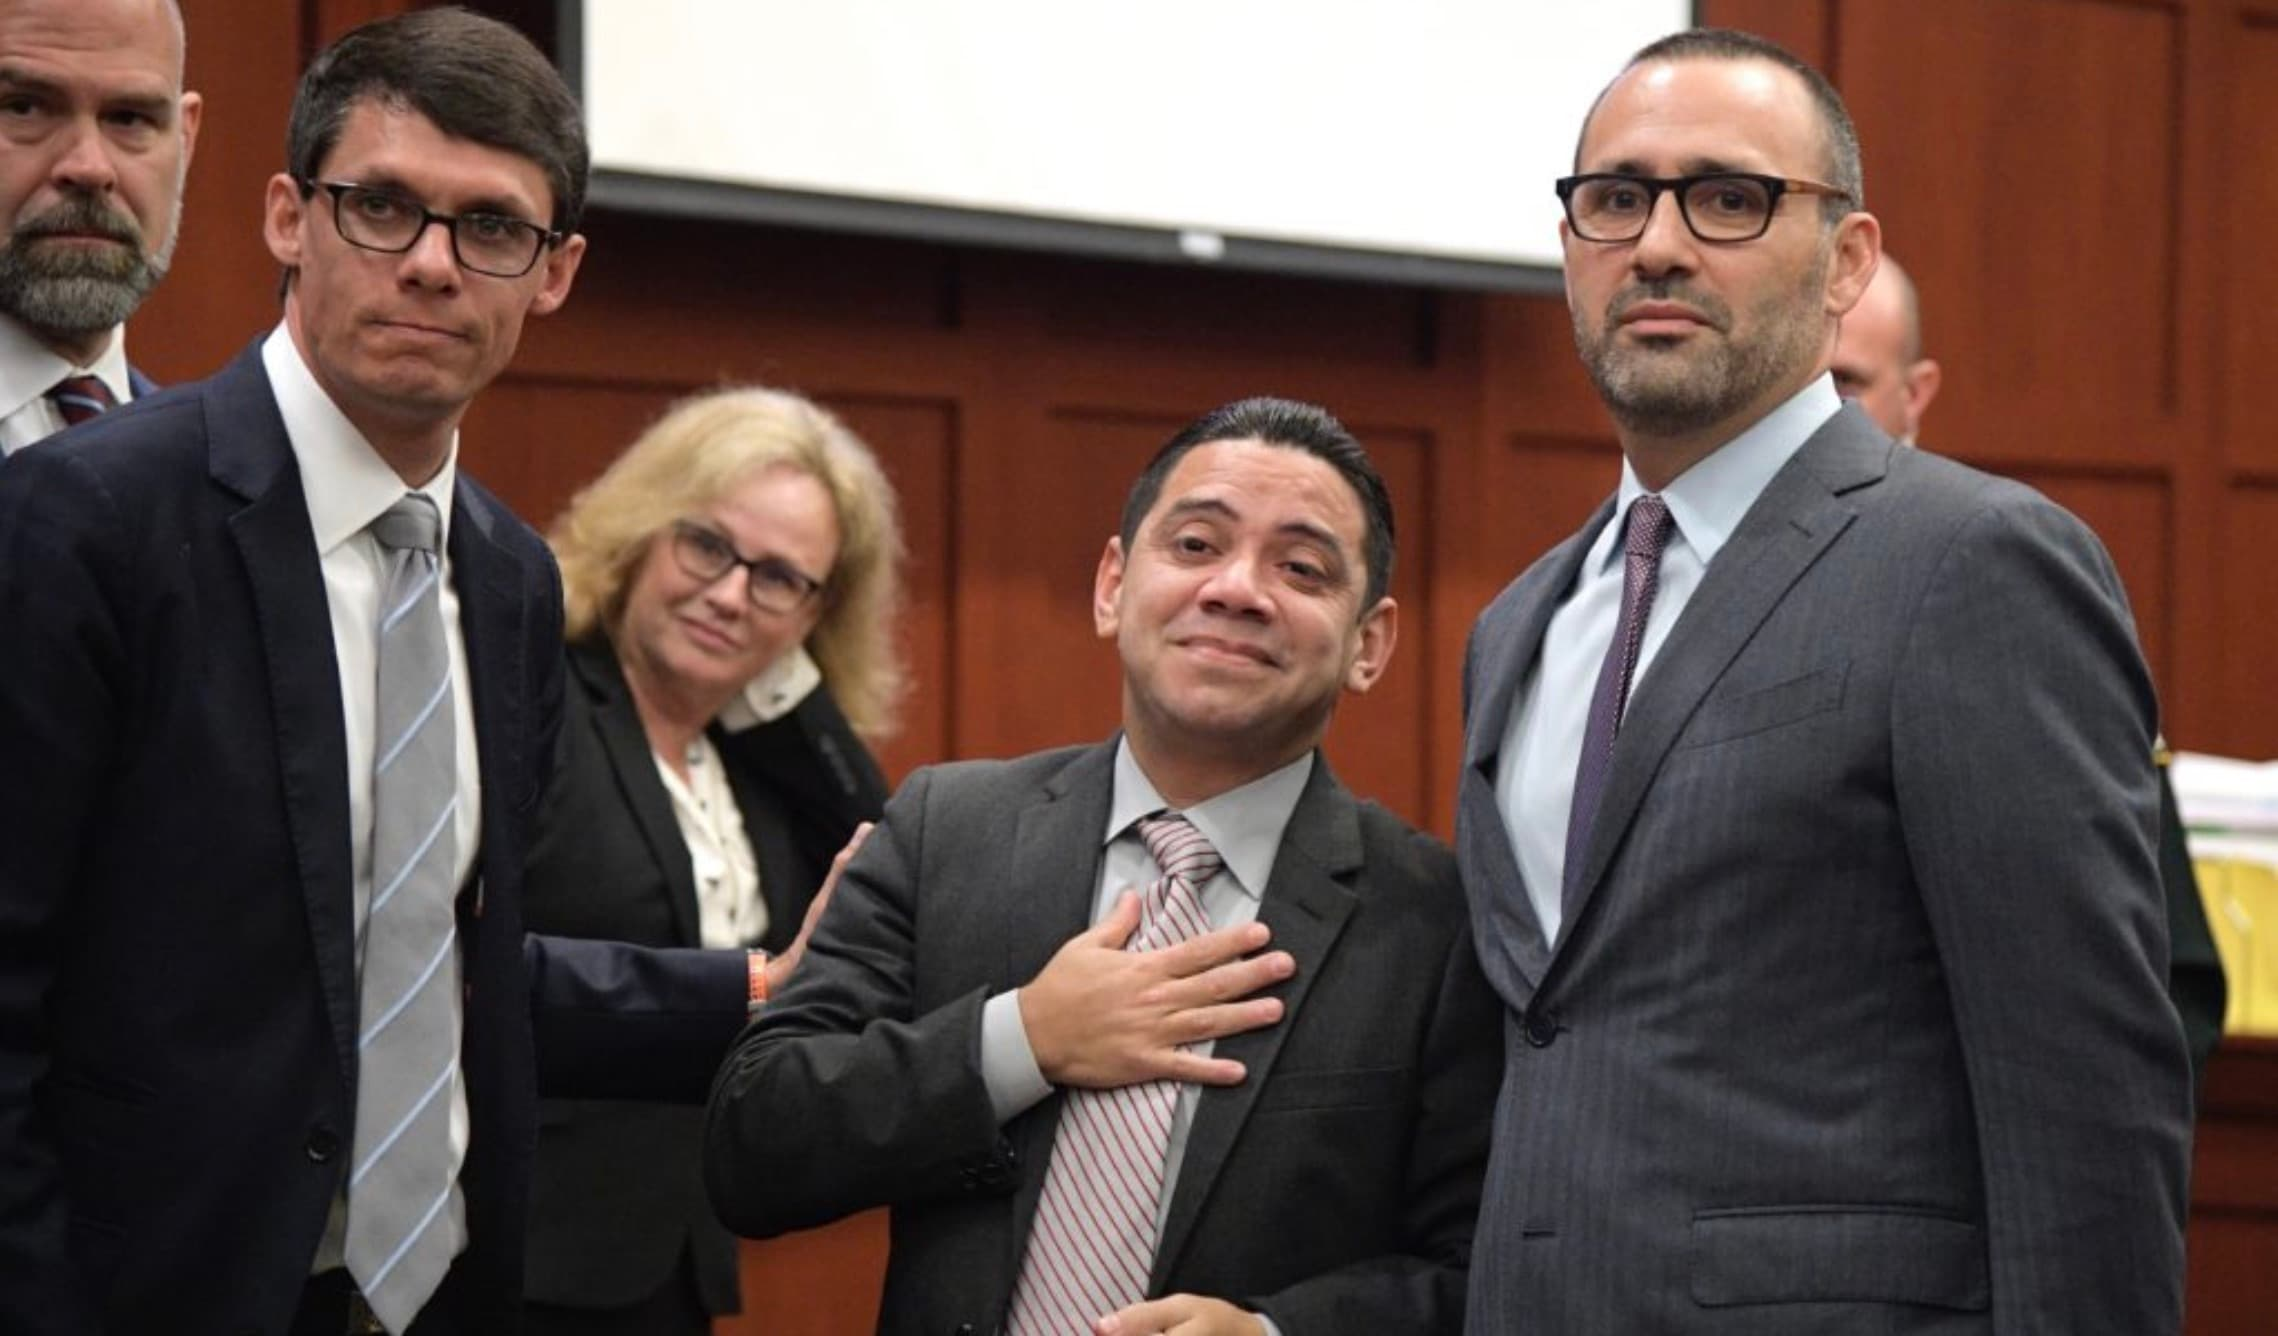 Exonerees in Florida, Idaho Murder Cases Initiate Lawsuits for Wrongful Prosecution